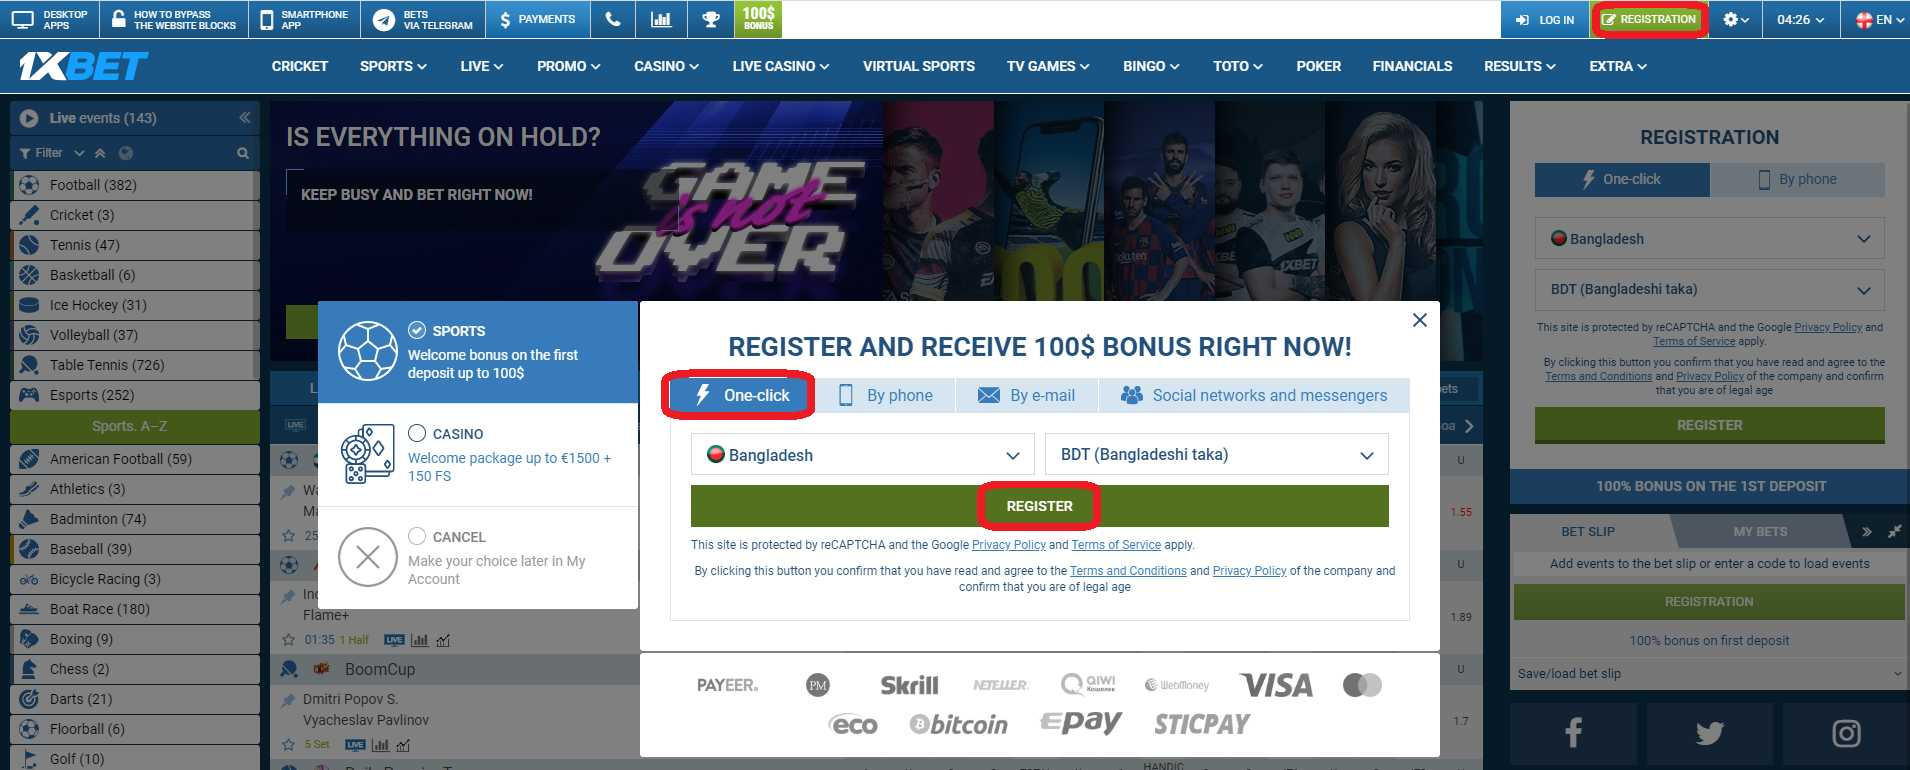 Try 1xBet app download to earn faster